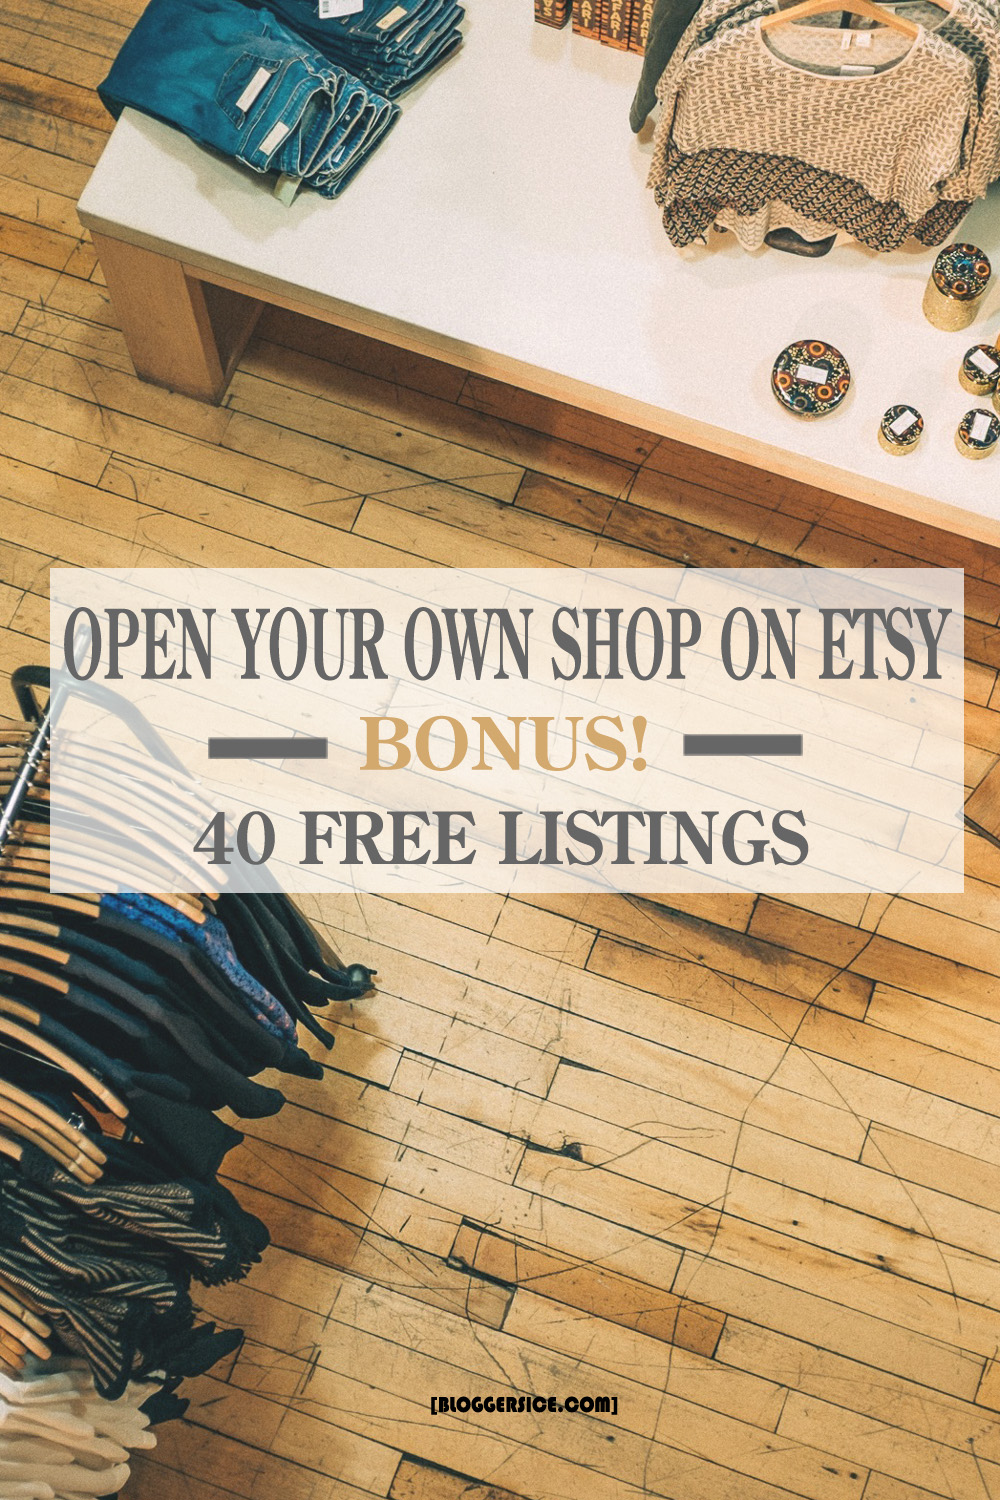 Why and How to Open Your Own Shop on Etsy? Bonus! 40 Free Listings.